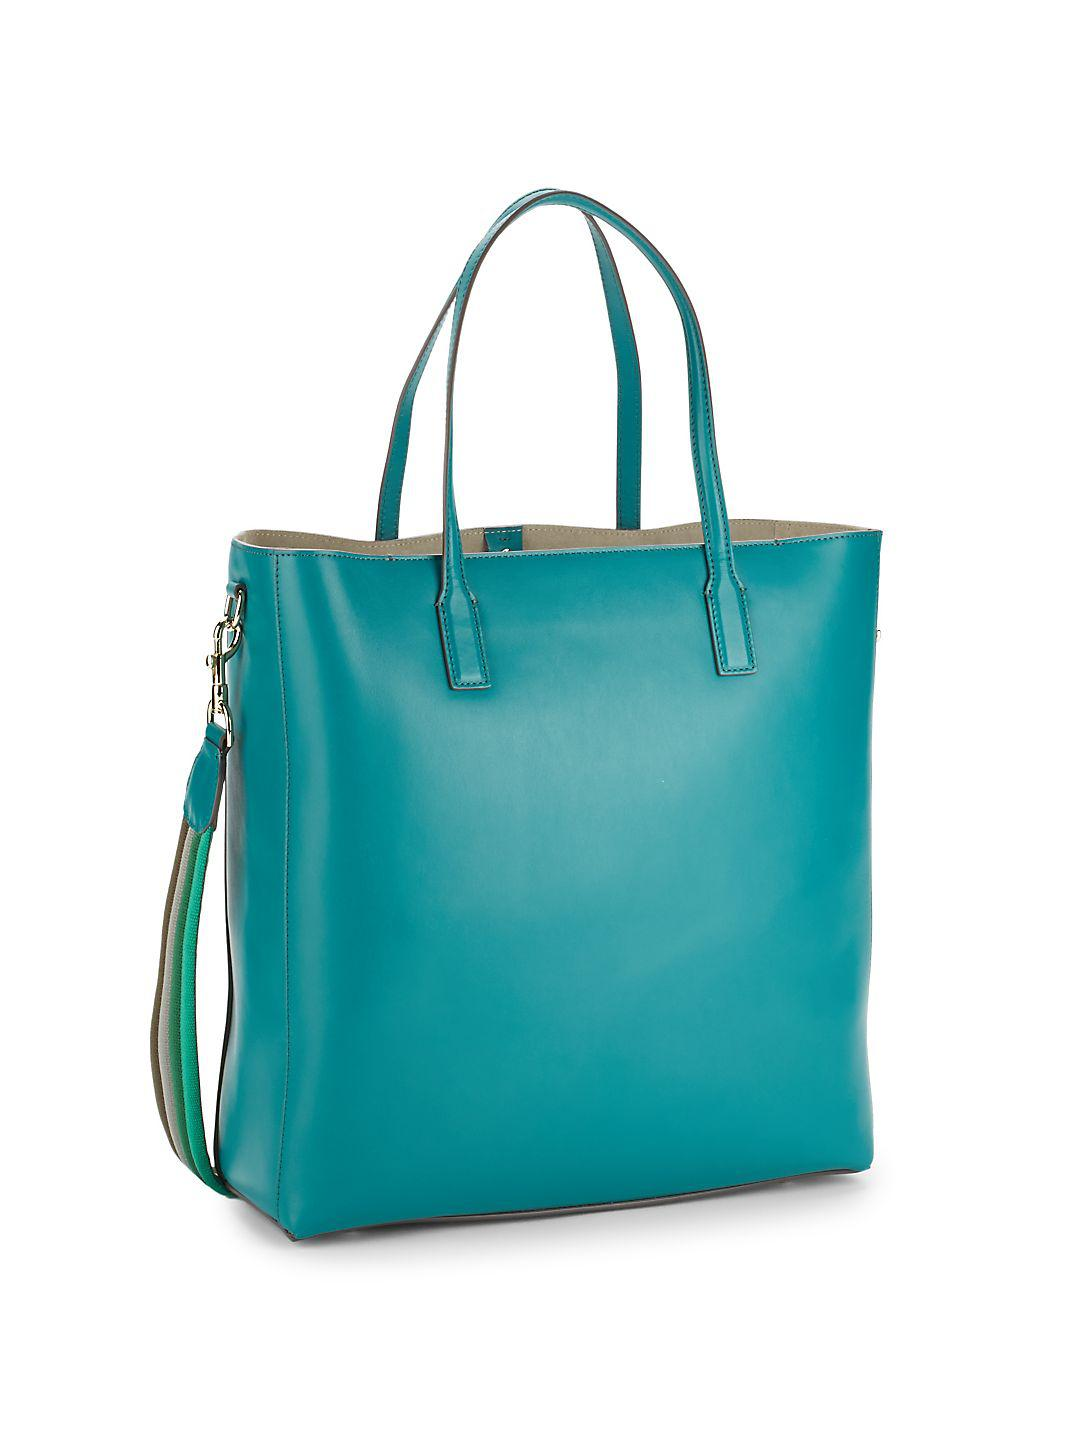 Anya Hindmarch Suede Ebury Smiley Tote in Green